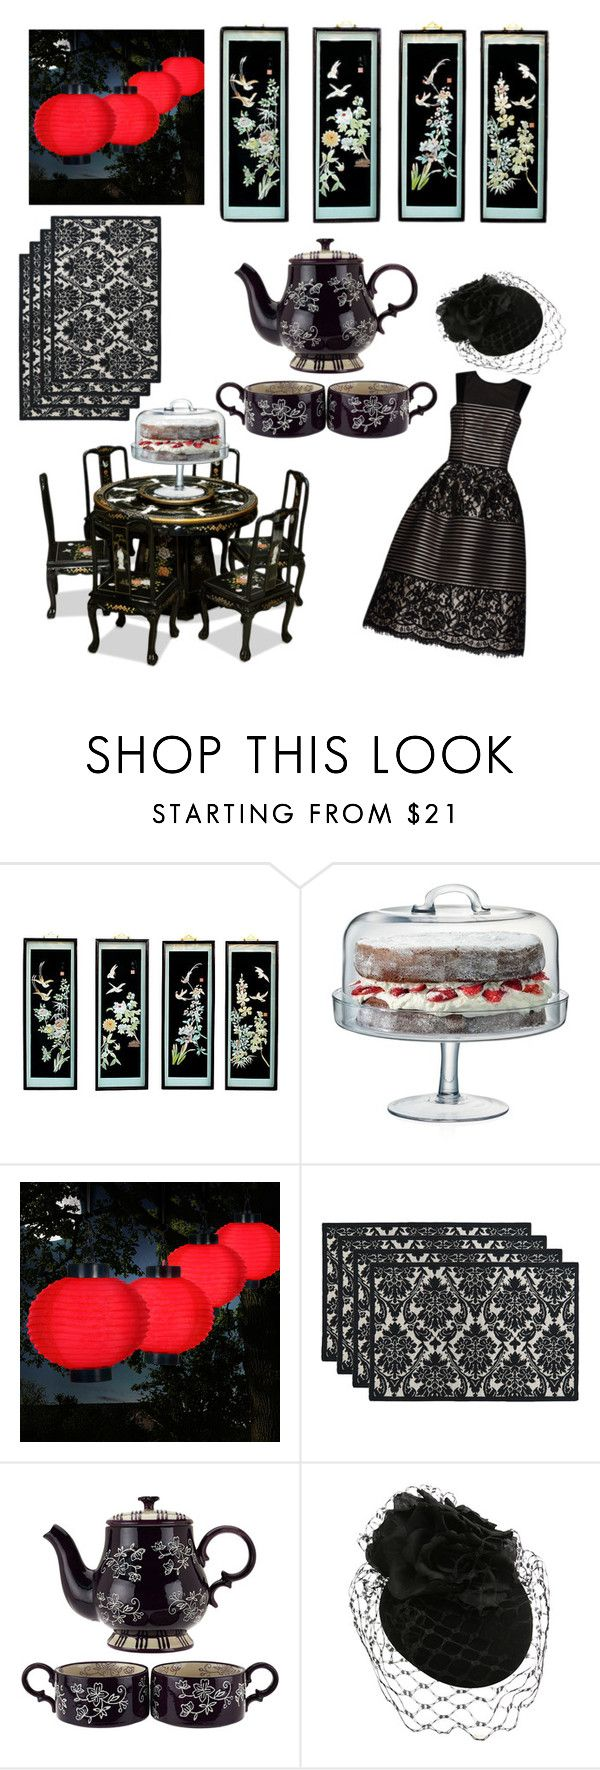 """Tea Party Theme: Oriental-Goth Fusion"" by fabzilla ❤ liked on Polyvore featuring interior, interiors, interior design, home, home decor, interior decorating, LSA International, TradeMark, Park B. Smith and teaparty"